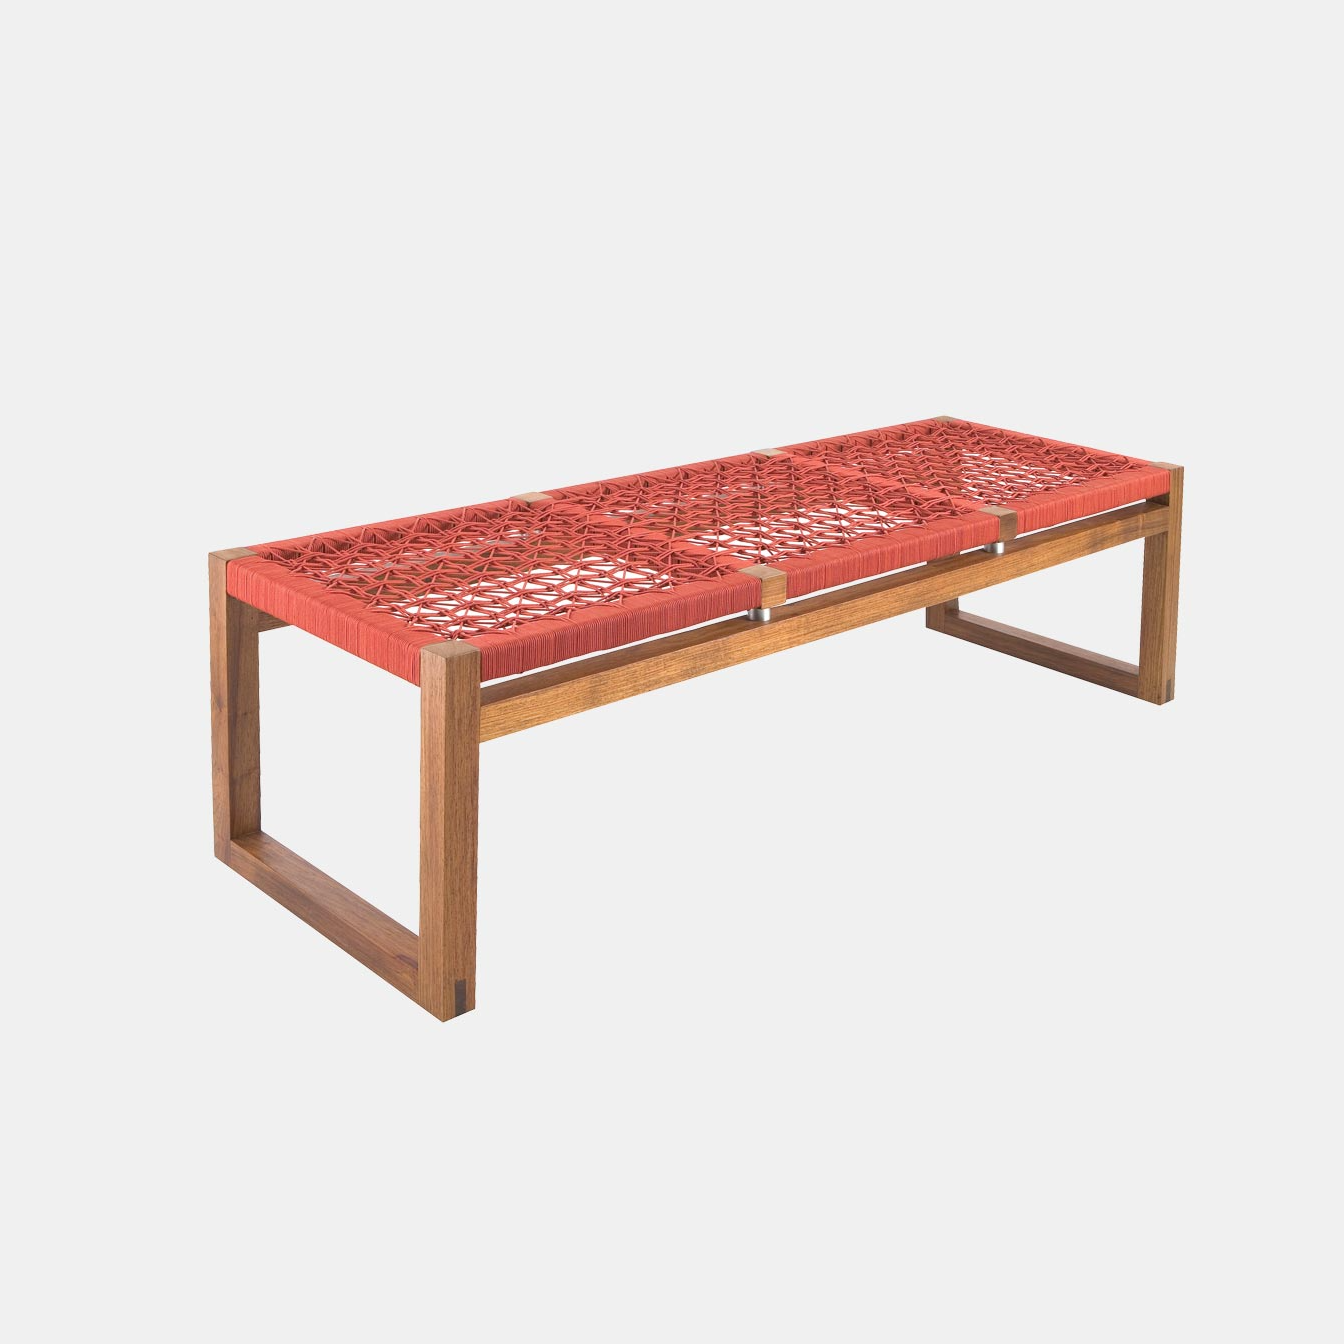 CUBE BENCH 2 SEAT by Vogel Design at SARZA. 2 seater, benches, cube bench, cube bench 2 seat, furniture, Vogel, vogel design, vogel furniture